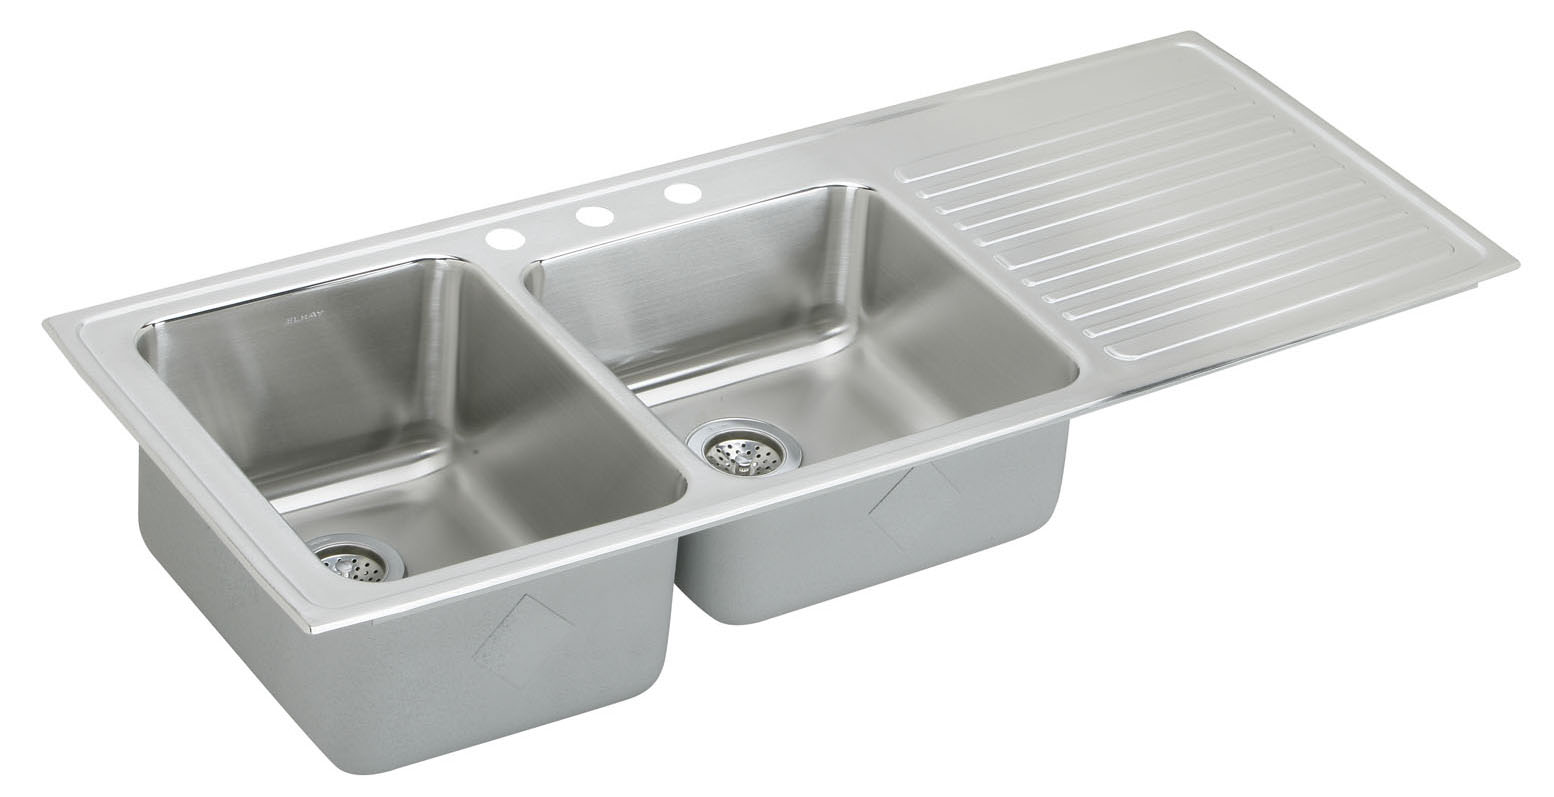 Double Bowl Stainless Steel Sink : ... Double Bowl Stainless Steel Sink Stainless Sinks Stainless Steel